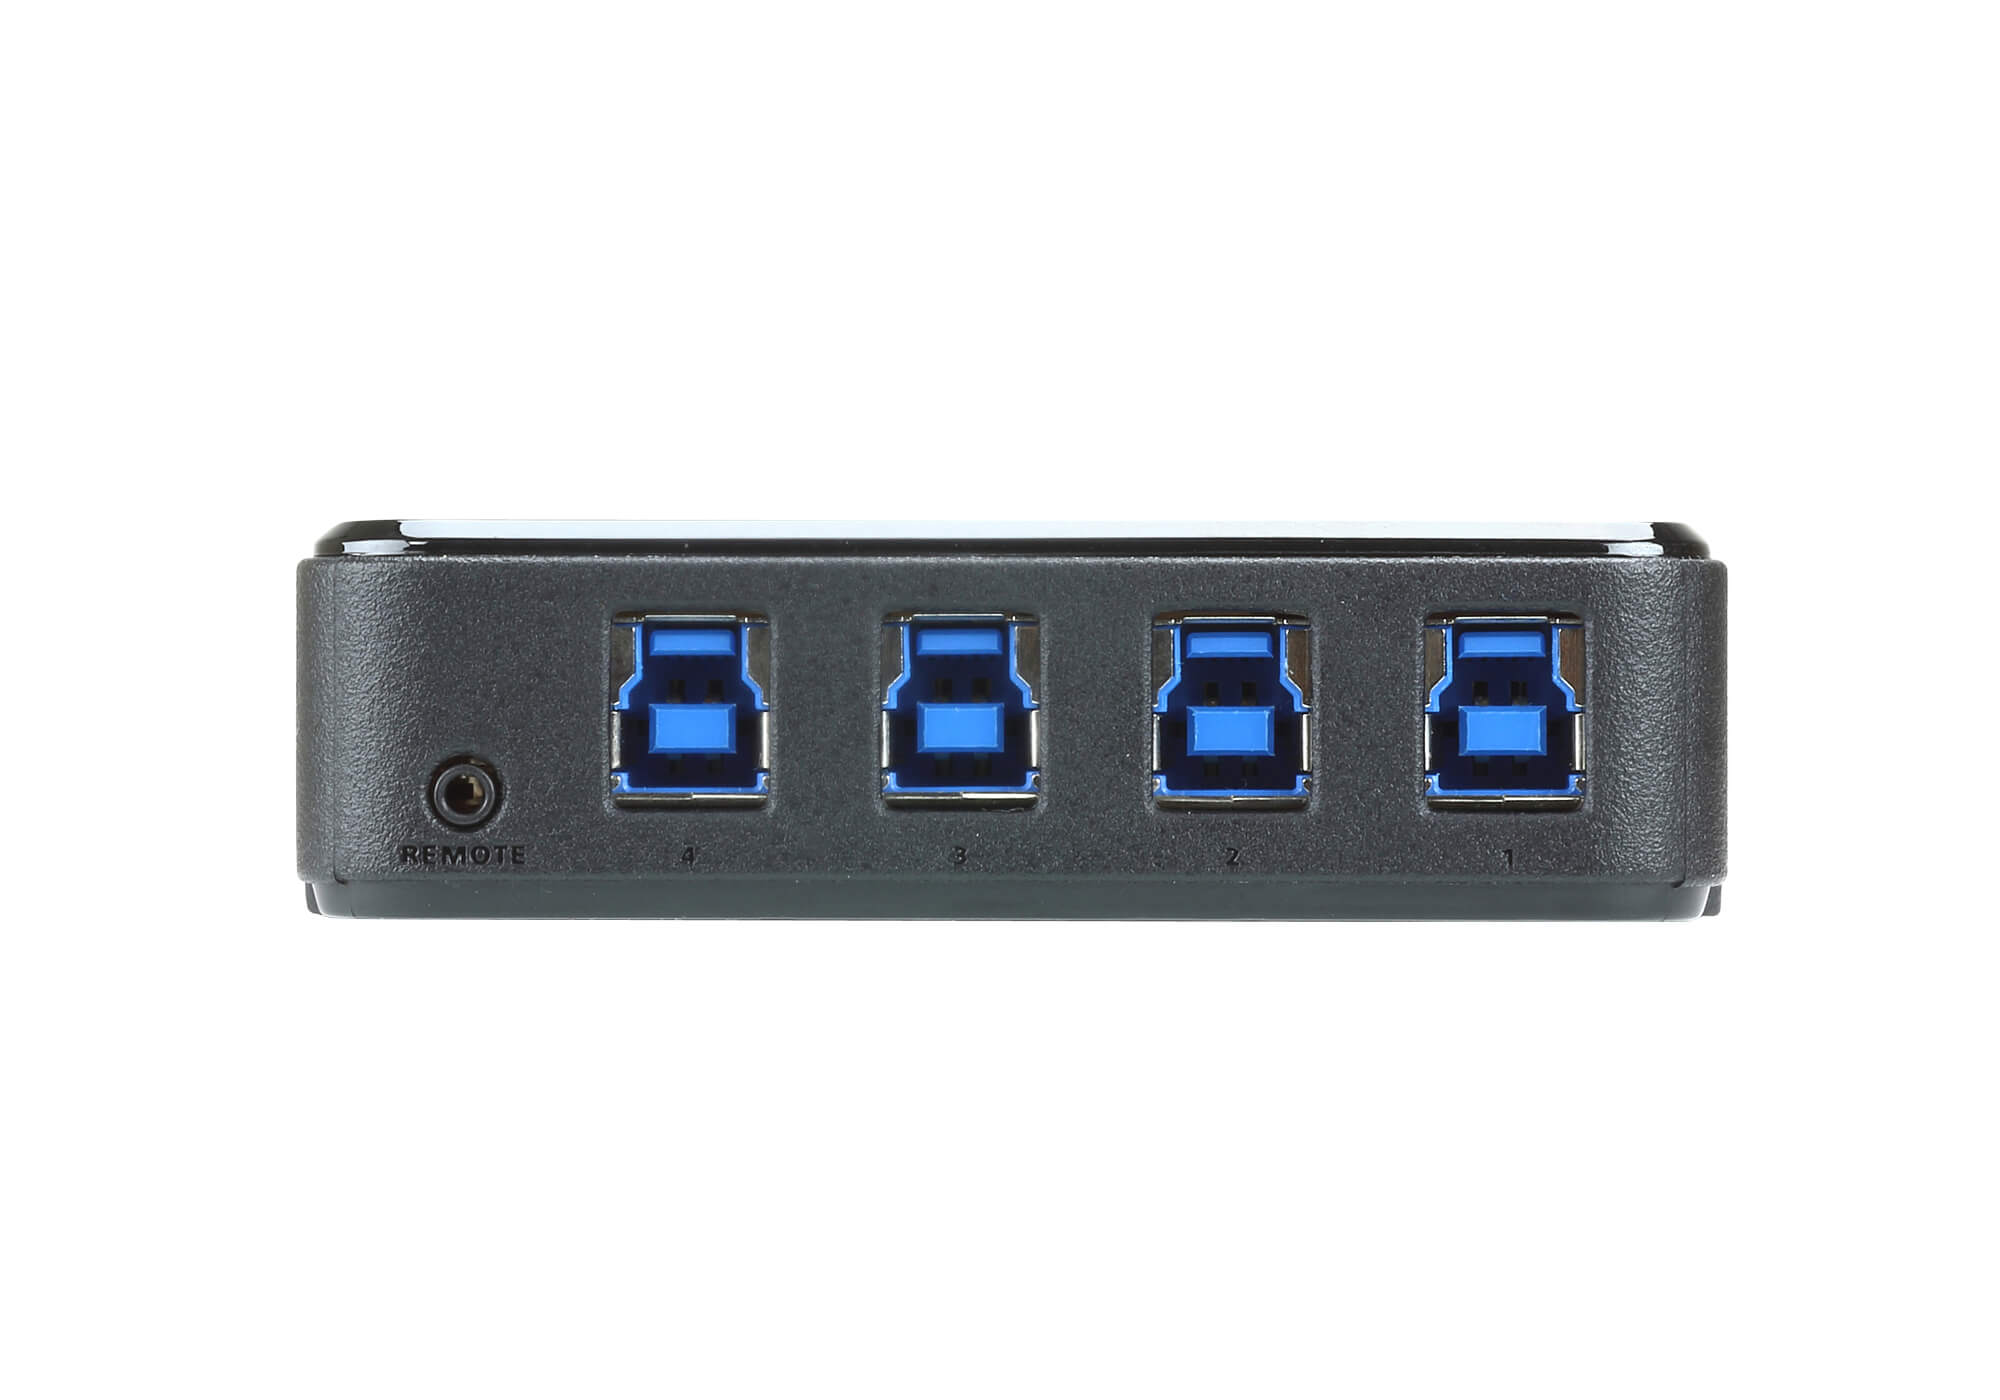 4 x 4 USB 3.2 Gen1 Peripheral Sharing Switch-2